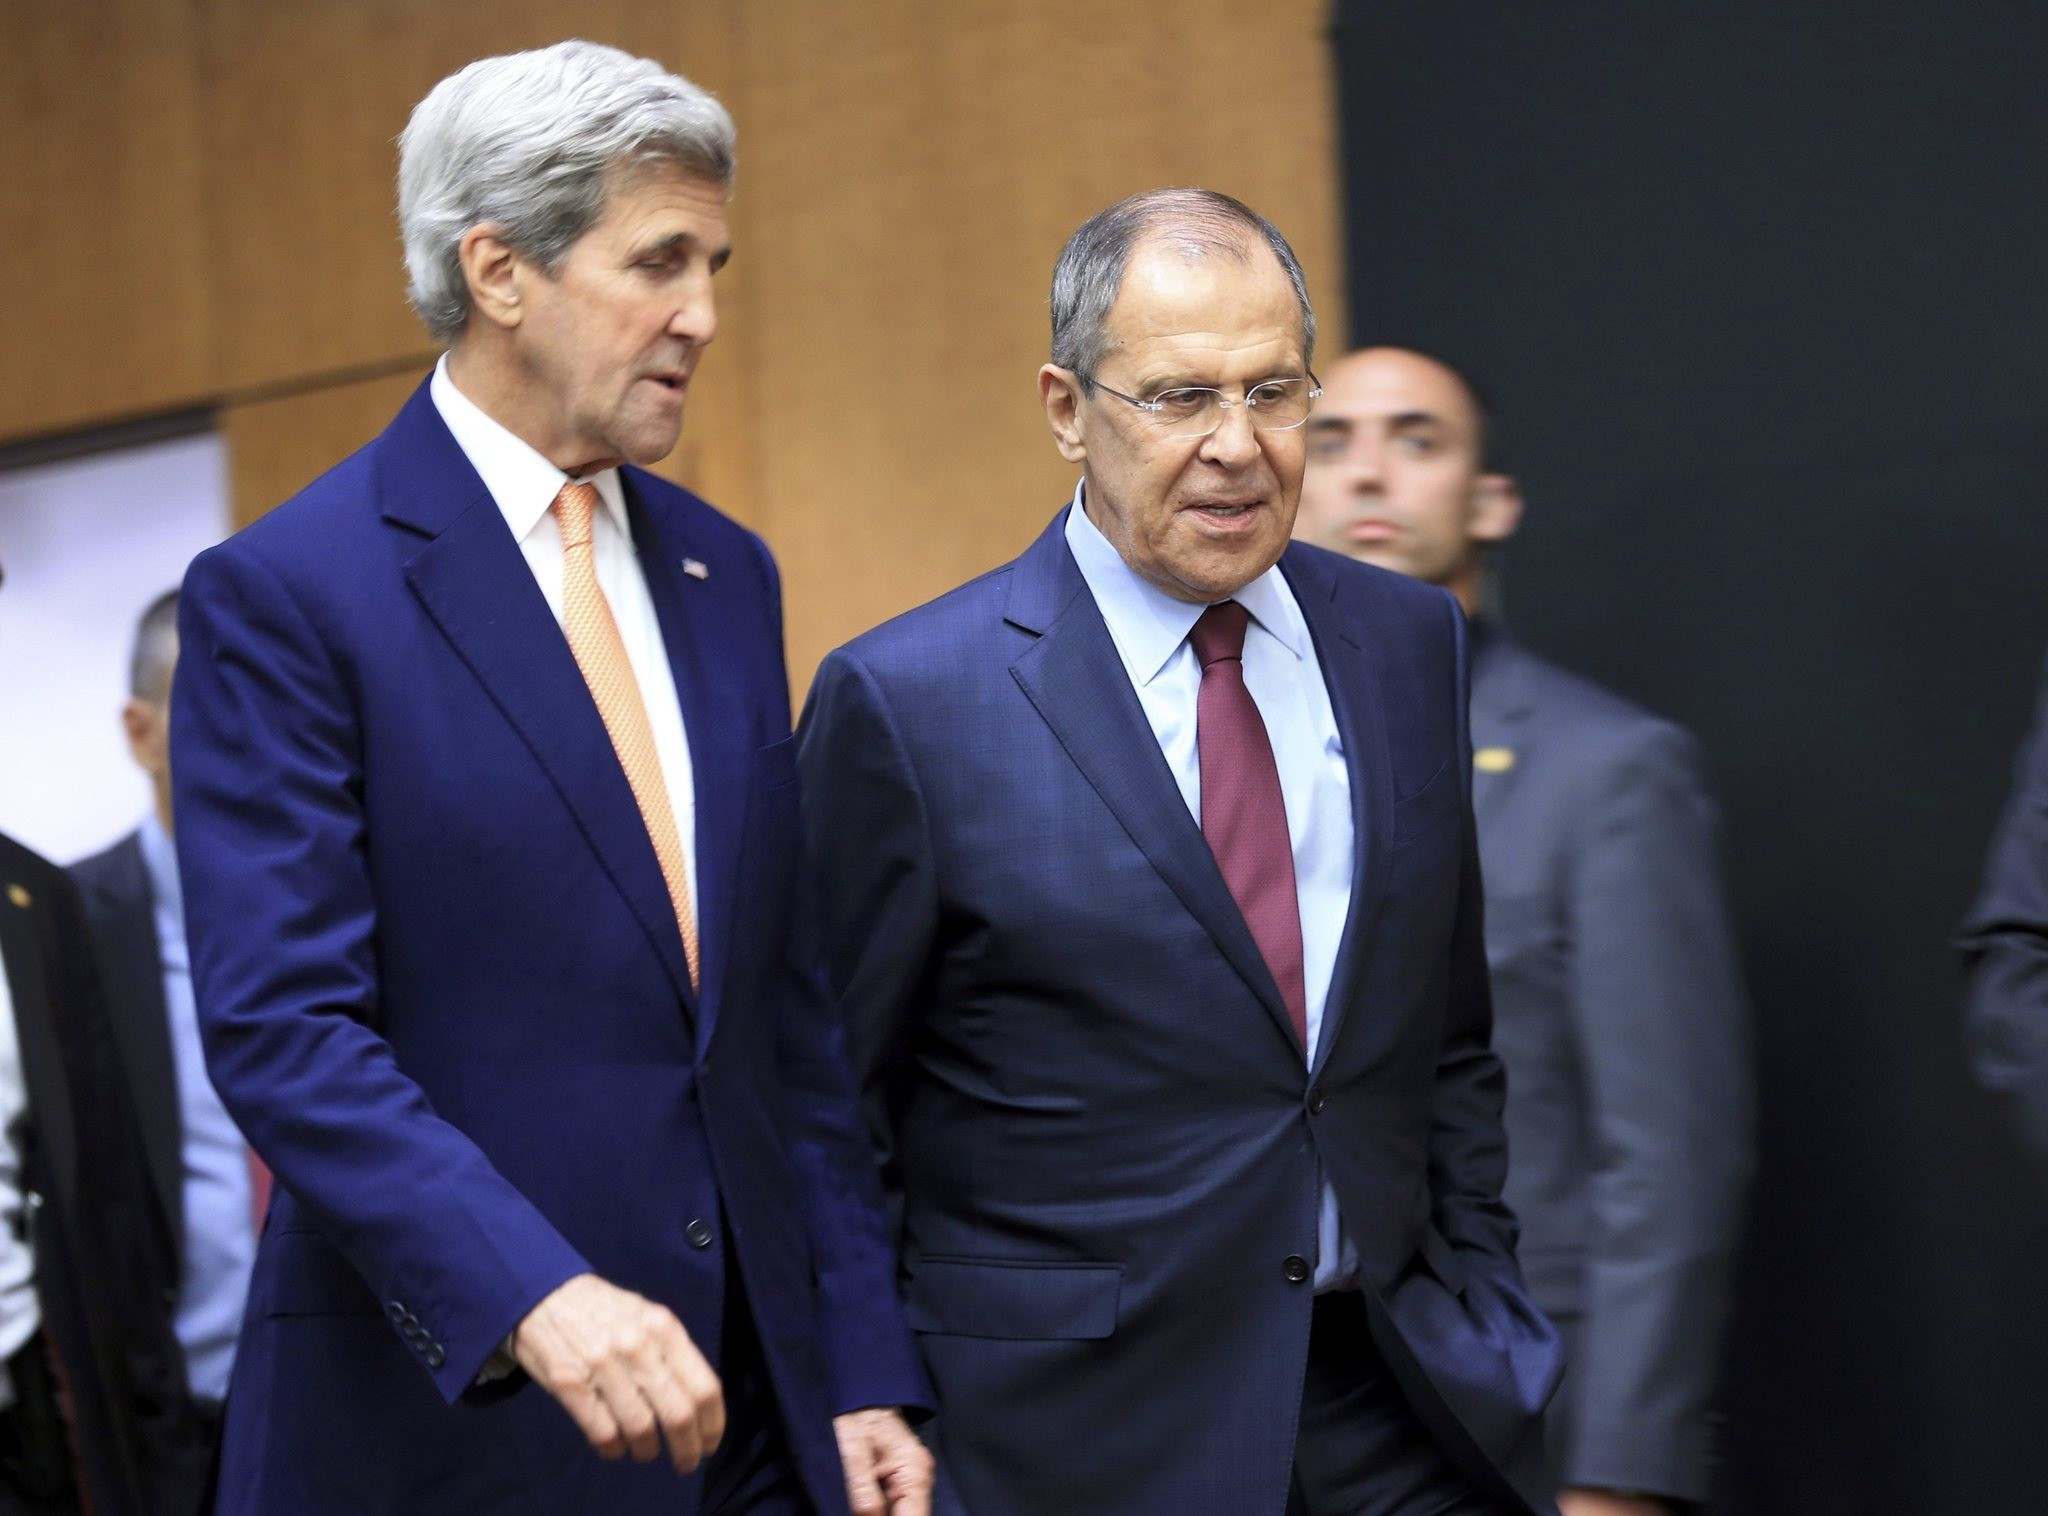 U.S. Secretary of State John Kerry (L) and Russian Foreign Minister Sergei Lavrov arrives for a news conference after a meeting on Syria in Geneva, Switzerland, August 26, 2016. )REUTERS Photo)